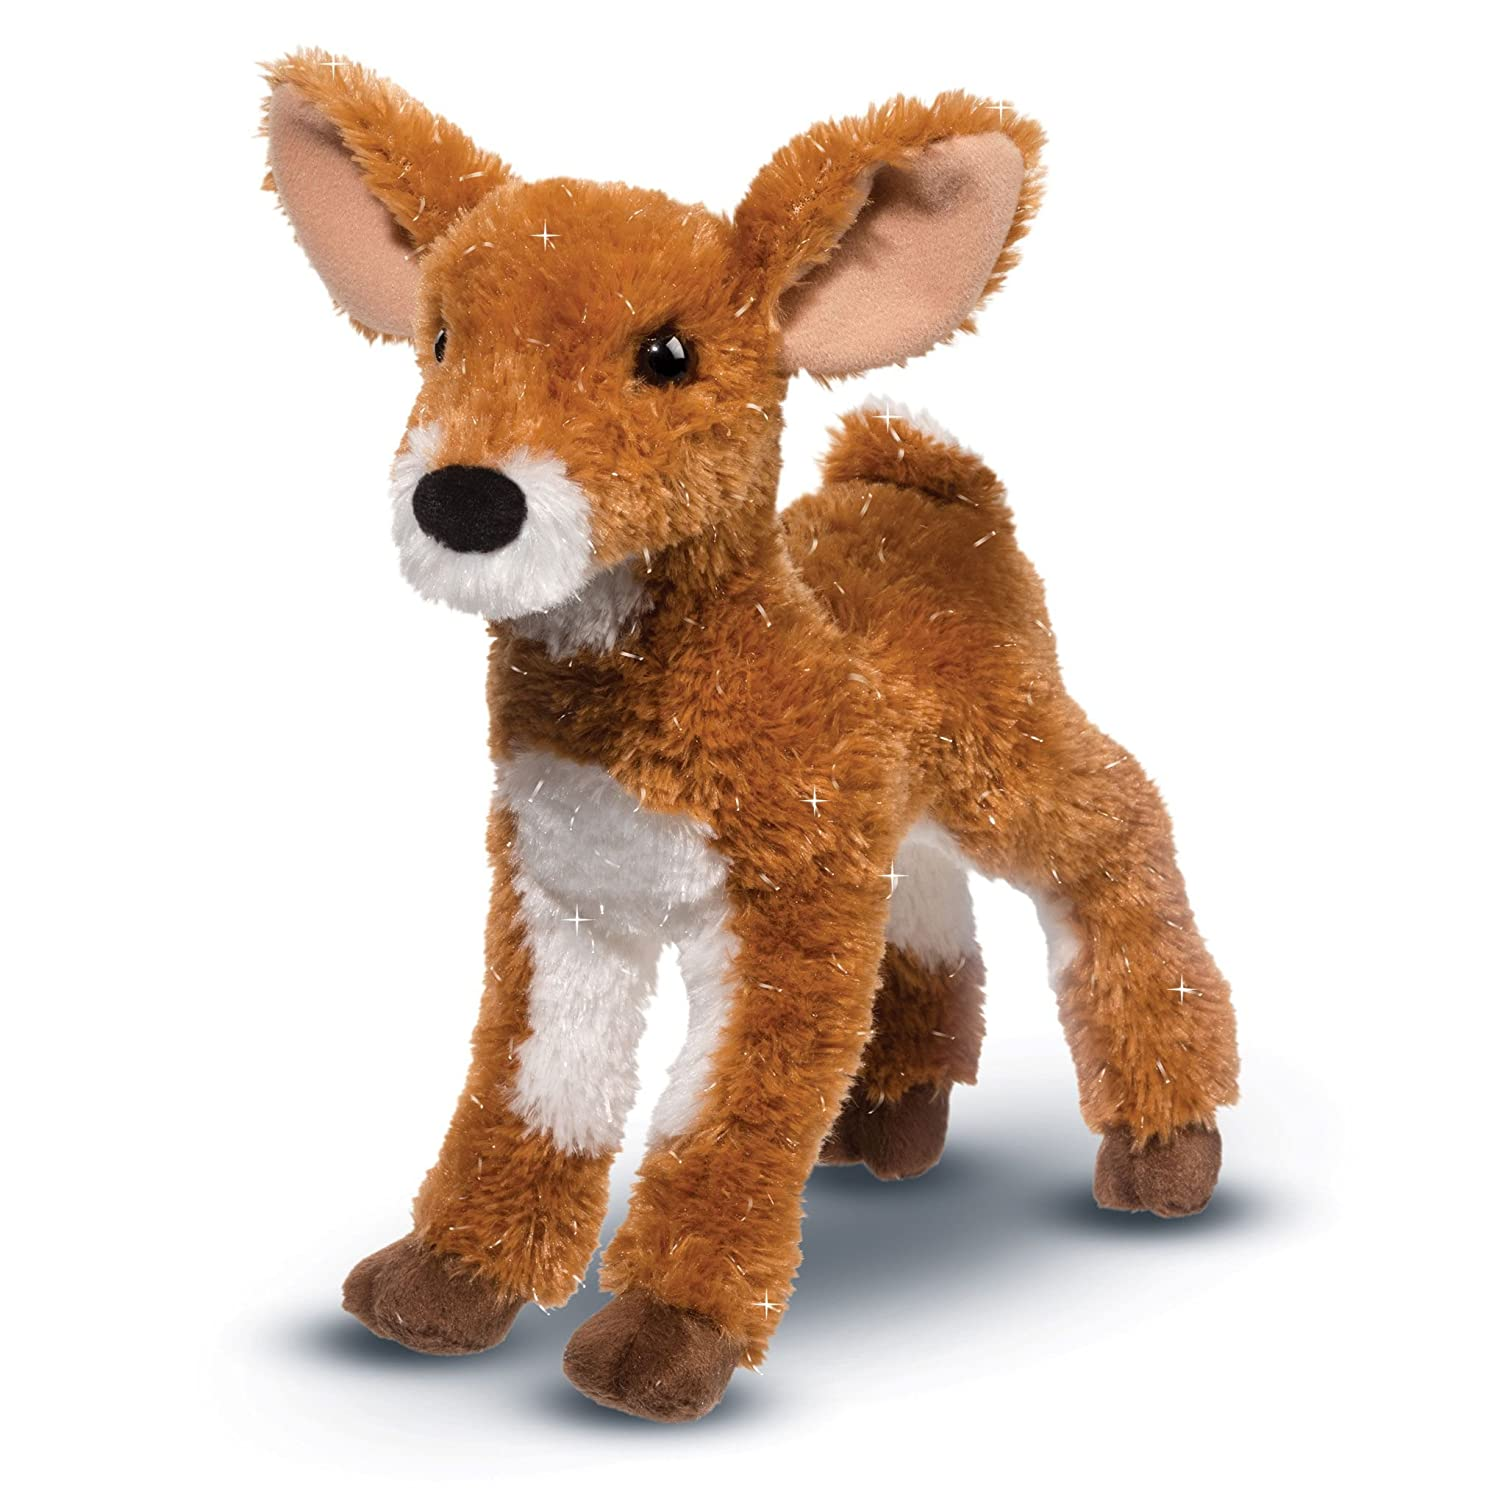 696 Standing 11 inch Twinkle Fawn Stuffed Animal by Douglas Cuddle Toys